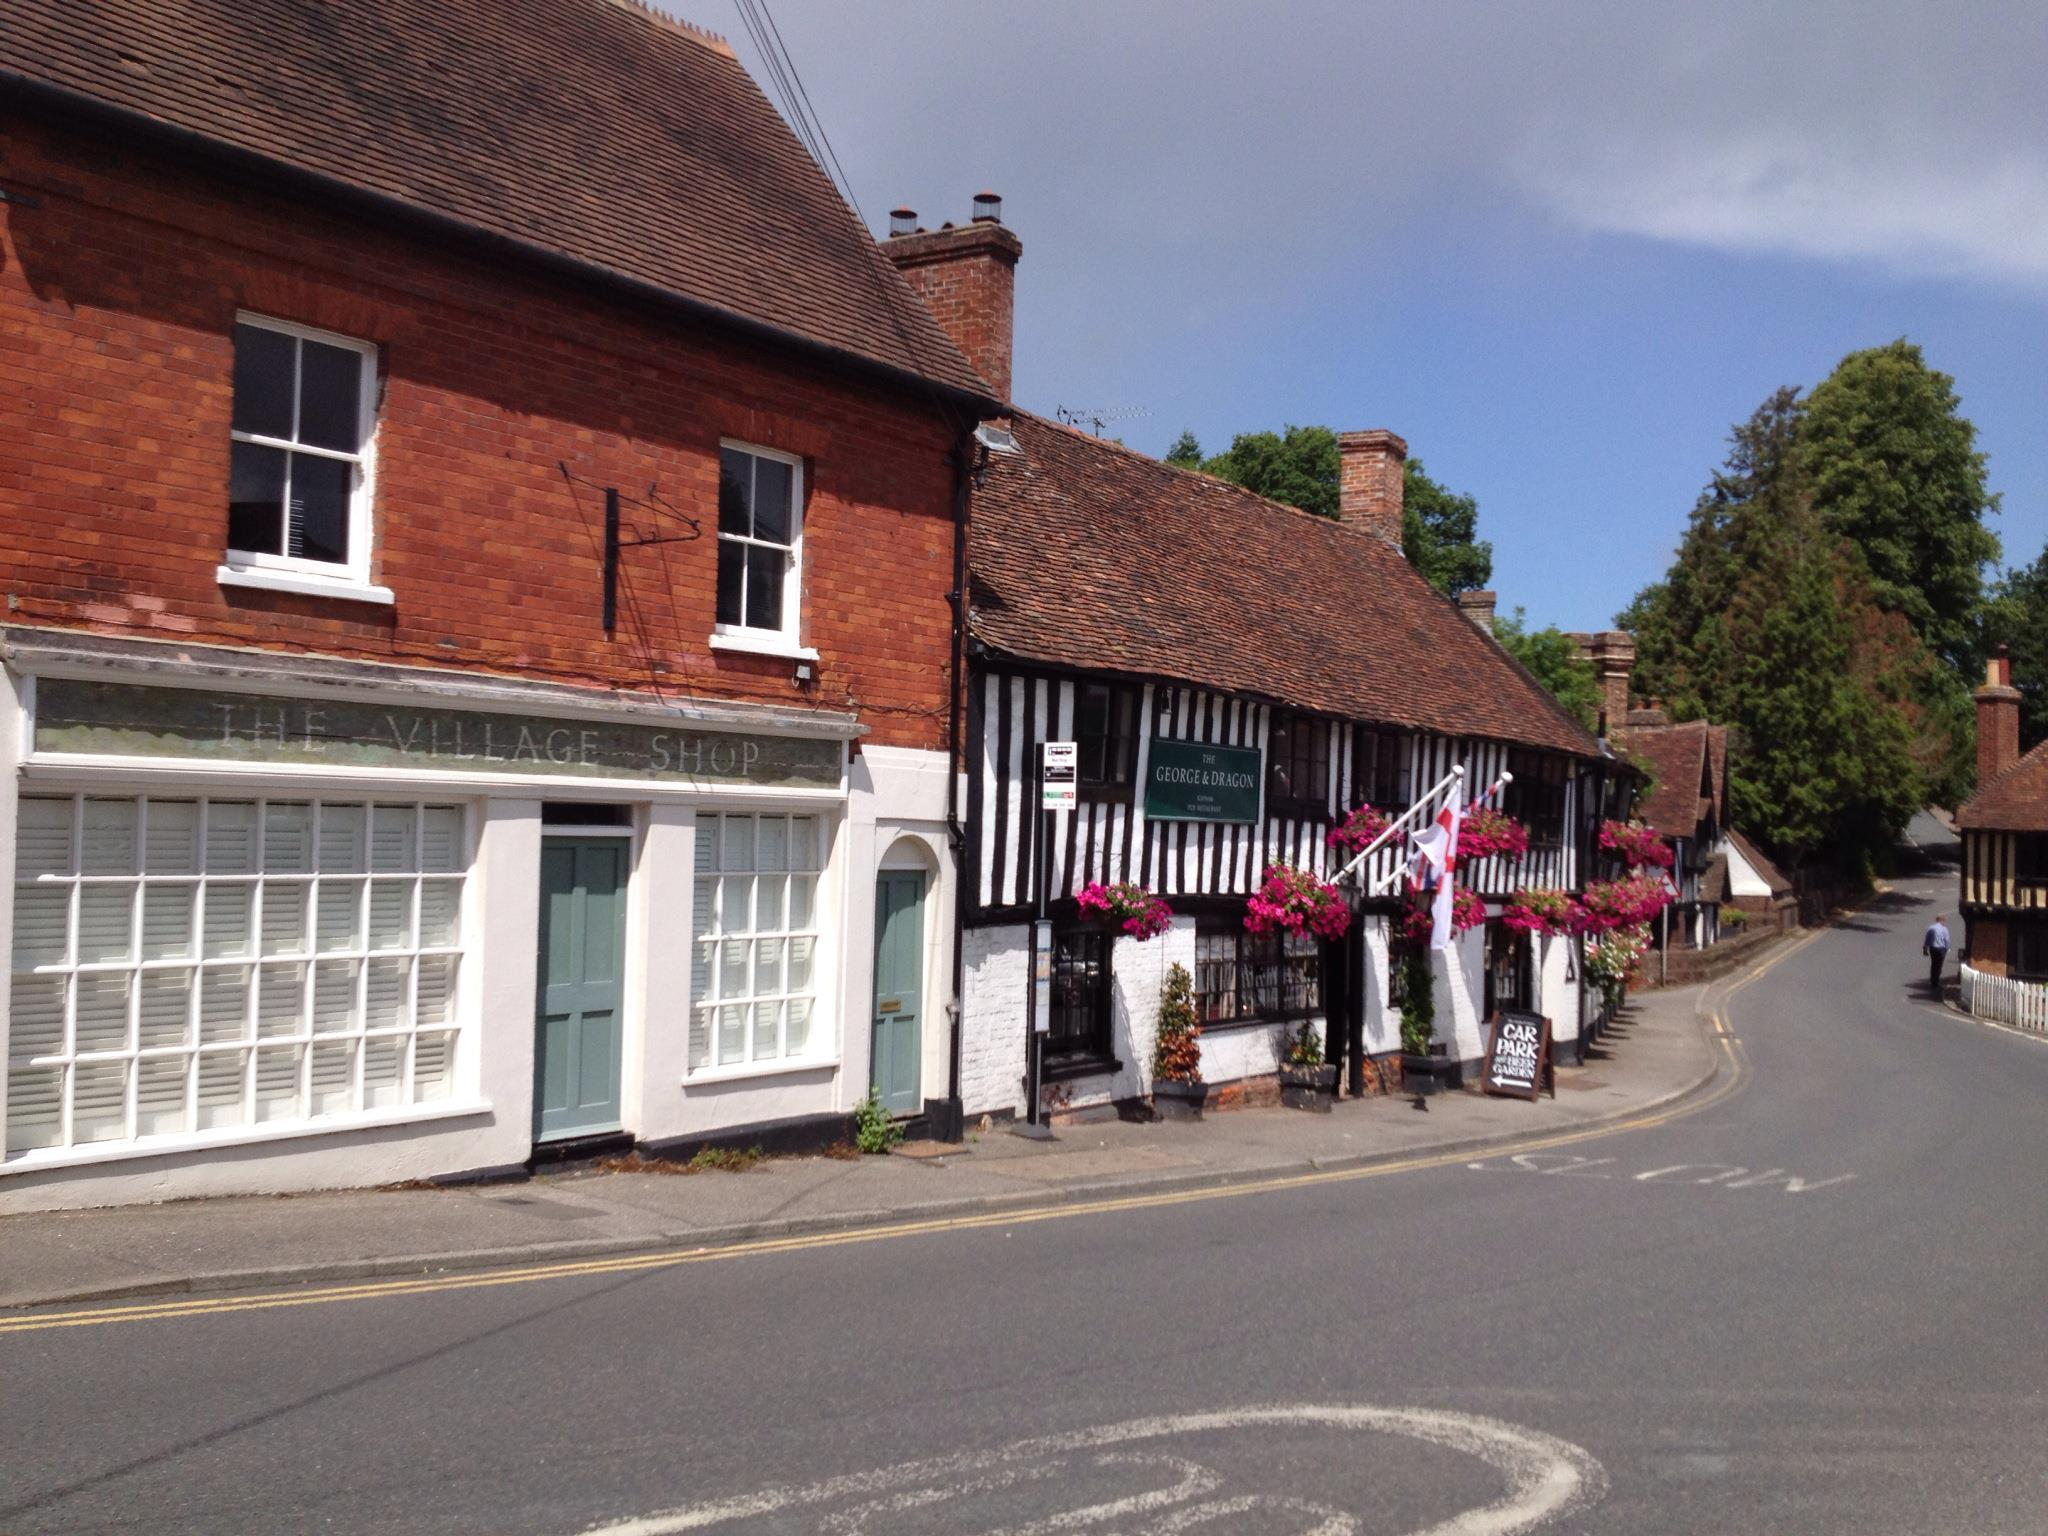 George and Dragon, Ightham an The Village Shop